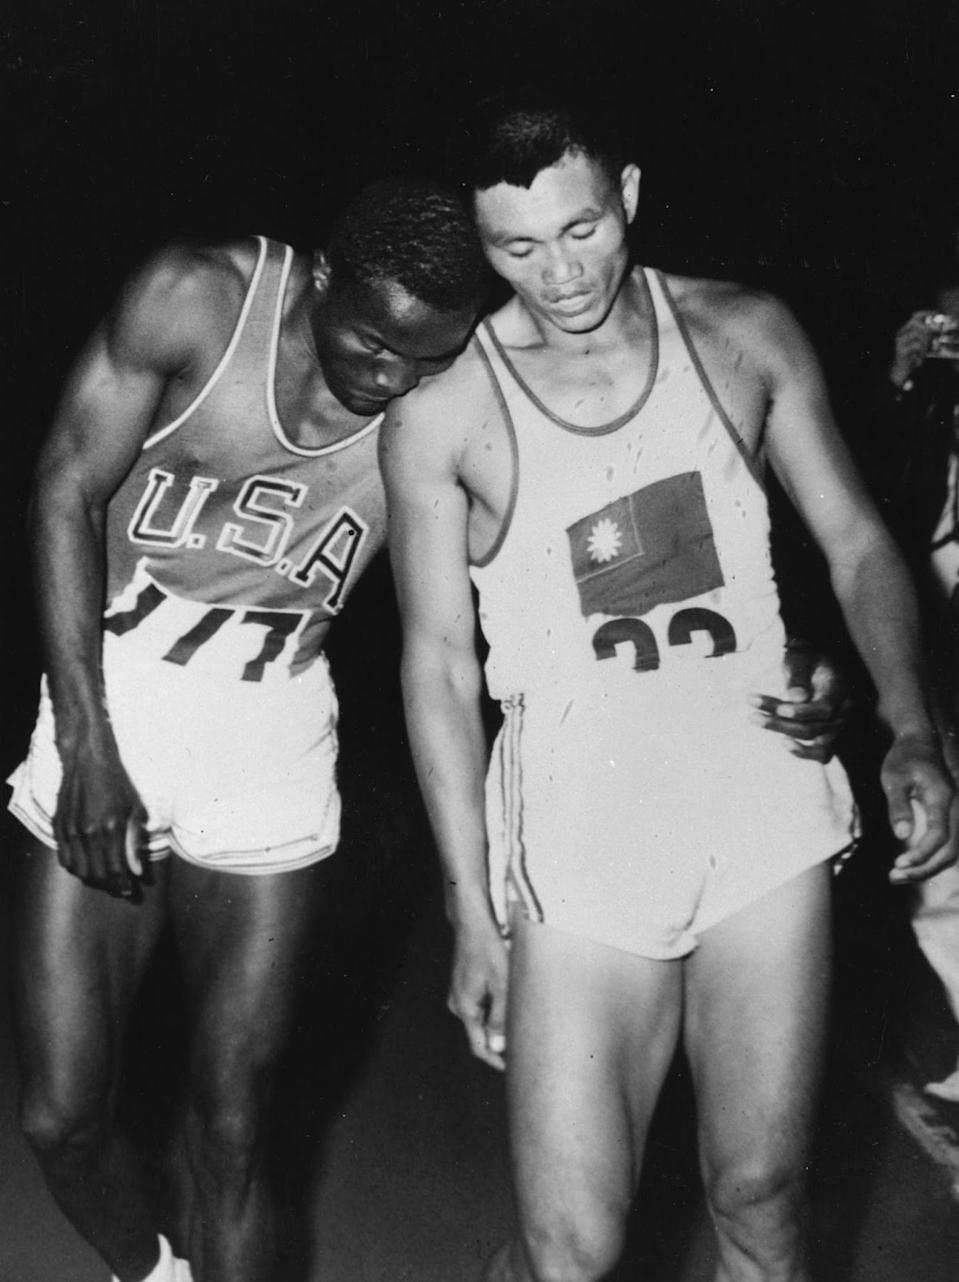 American athlete Rafer Johnson (left) and Yang Chuan-kwang of Taiwan together after completing the 1500m event of the decathlon at the 1960 Rome Olympics. Johnson went on to win the decathlon with Yang in second place. (PHOTO: Keystone/Getty Images)